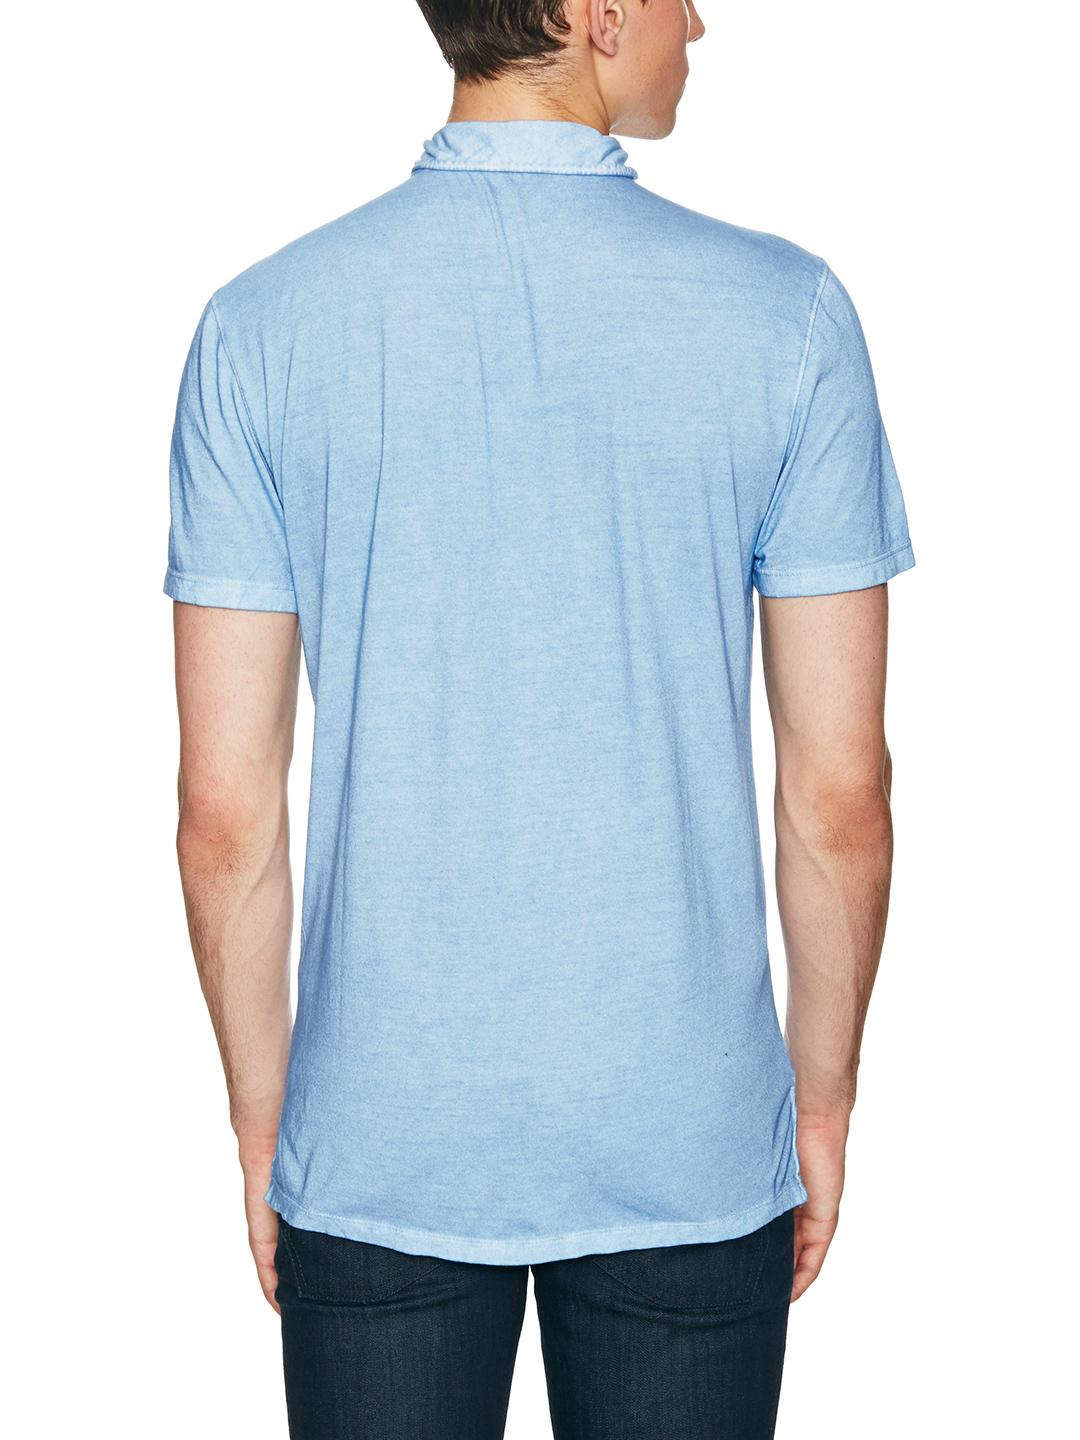 John Varvatos Cotton Distressed Knit Polo Shirt in Sky (Blue) for Men